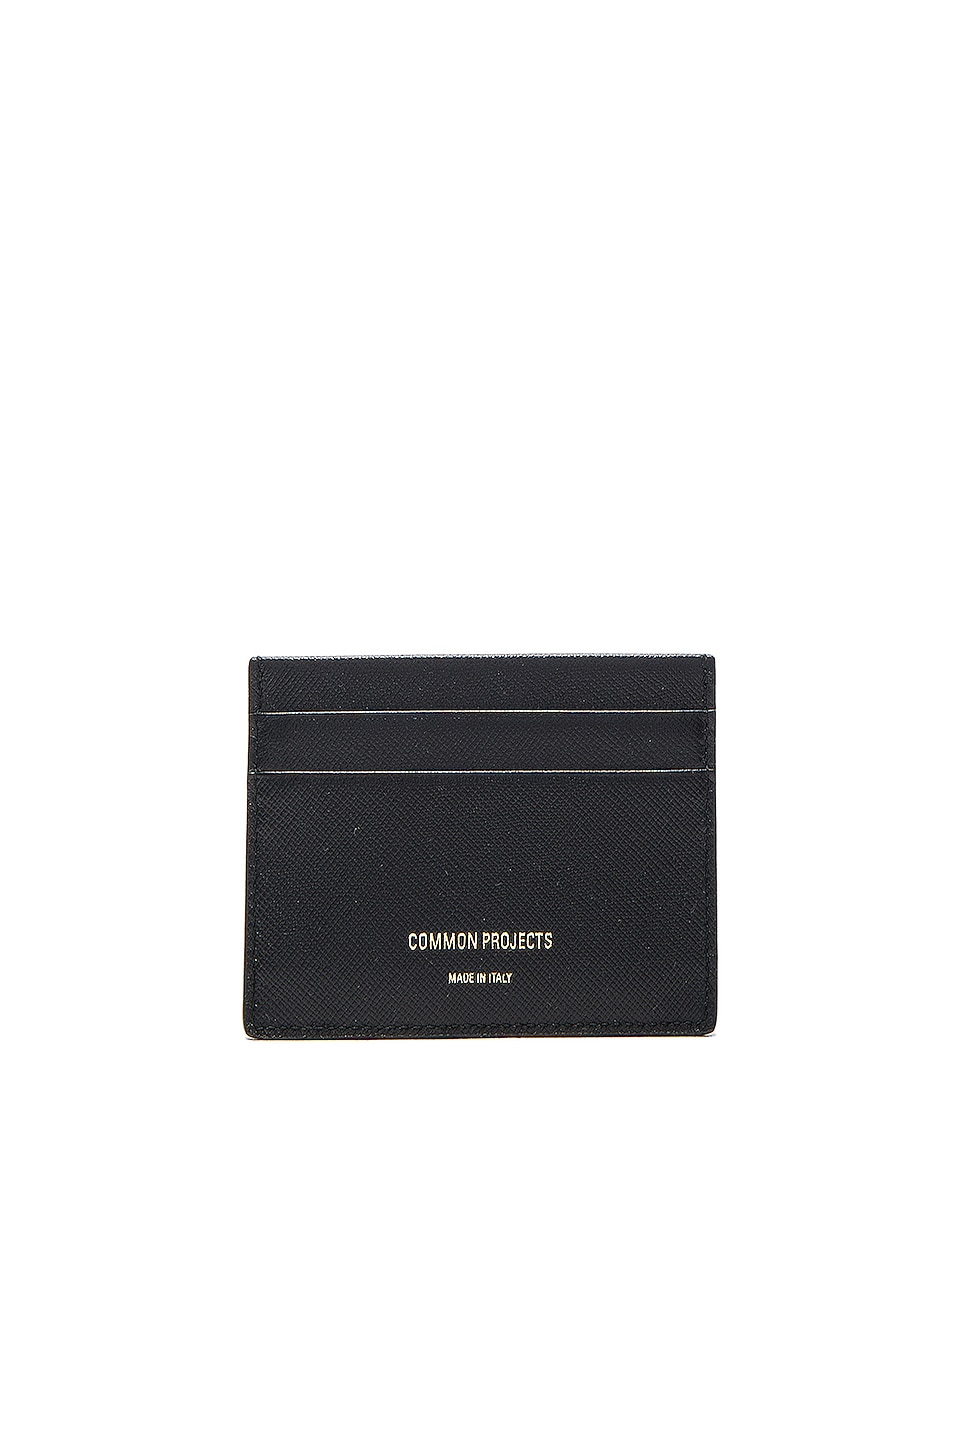 Common Projects Multi Cardholder in Black